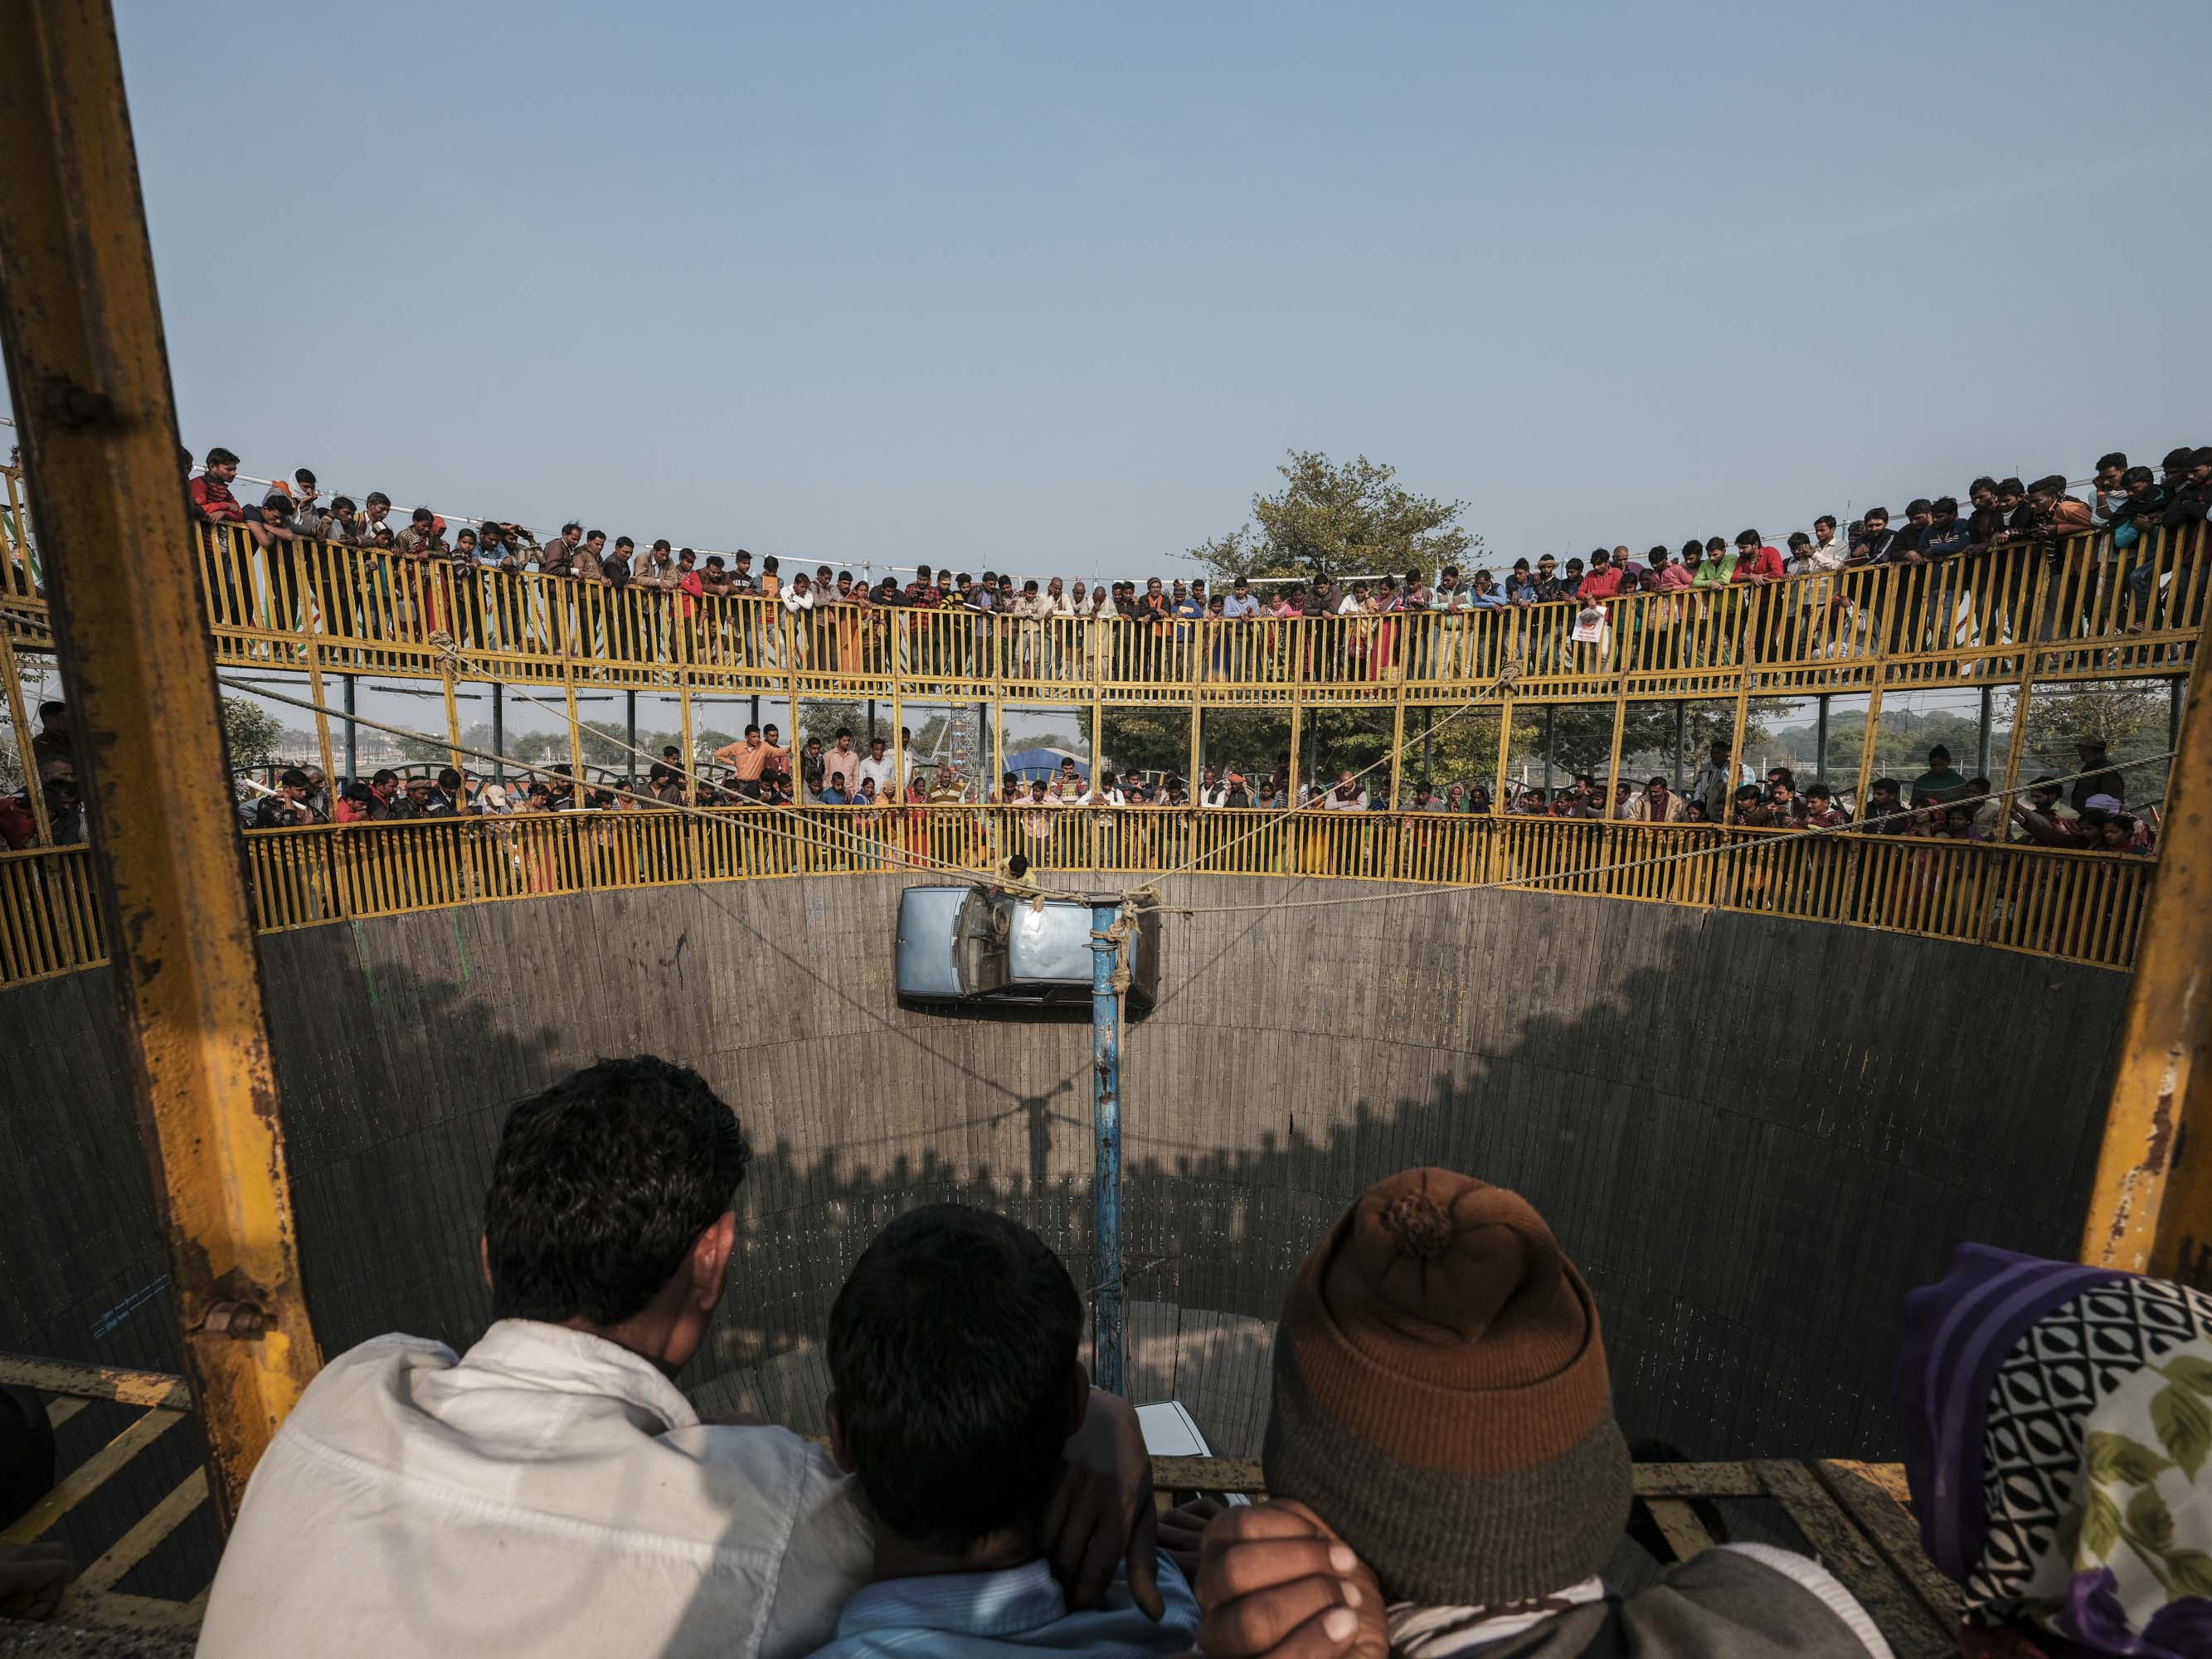 car death wall show people pilgrims Kumbh mela 2019 India Allahabad Prayagraj Ardh hindu religious Festival event rivers photographer jose jeuland photography